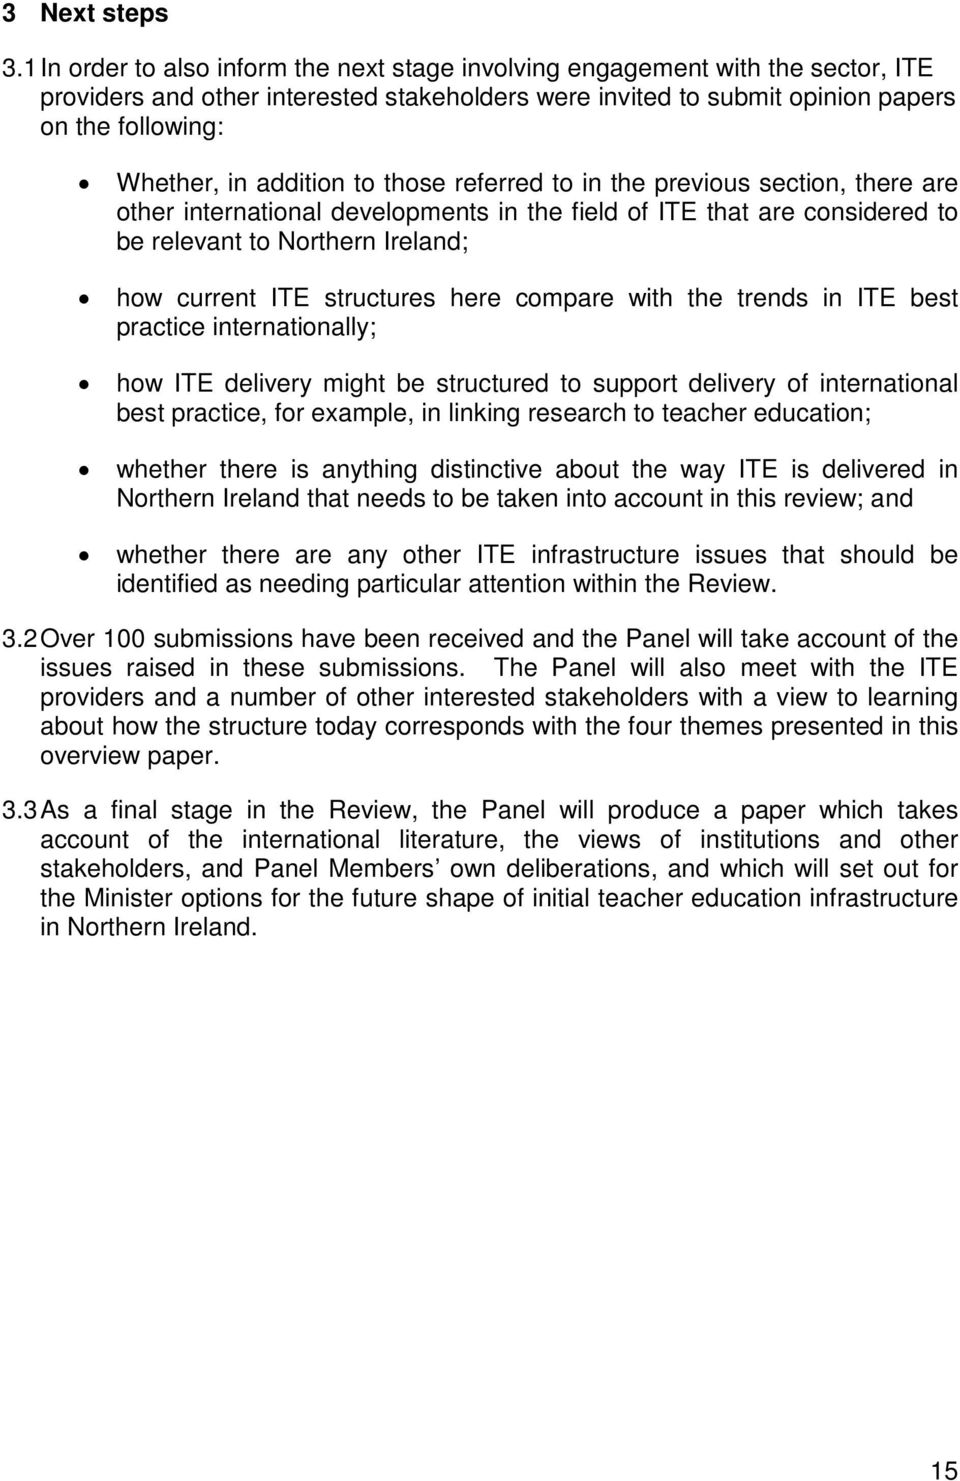 addition to those referred to in the previous section, there are other international developments in the field of ITE that are considered to be relevant to Northern Ireland; how current ITE